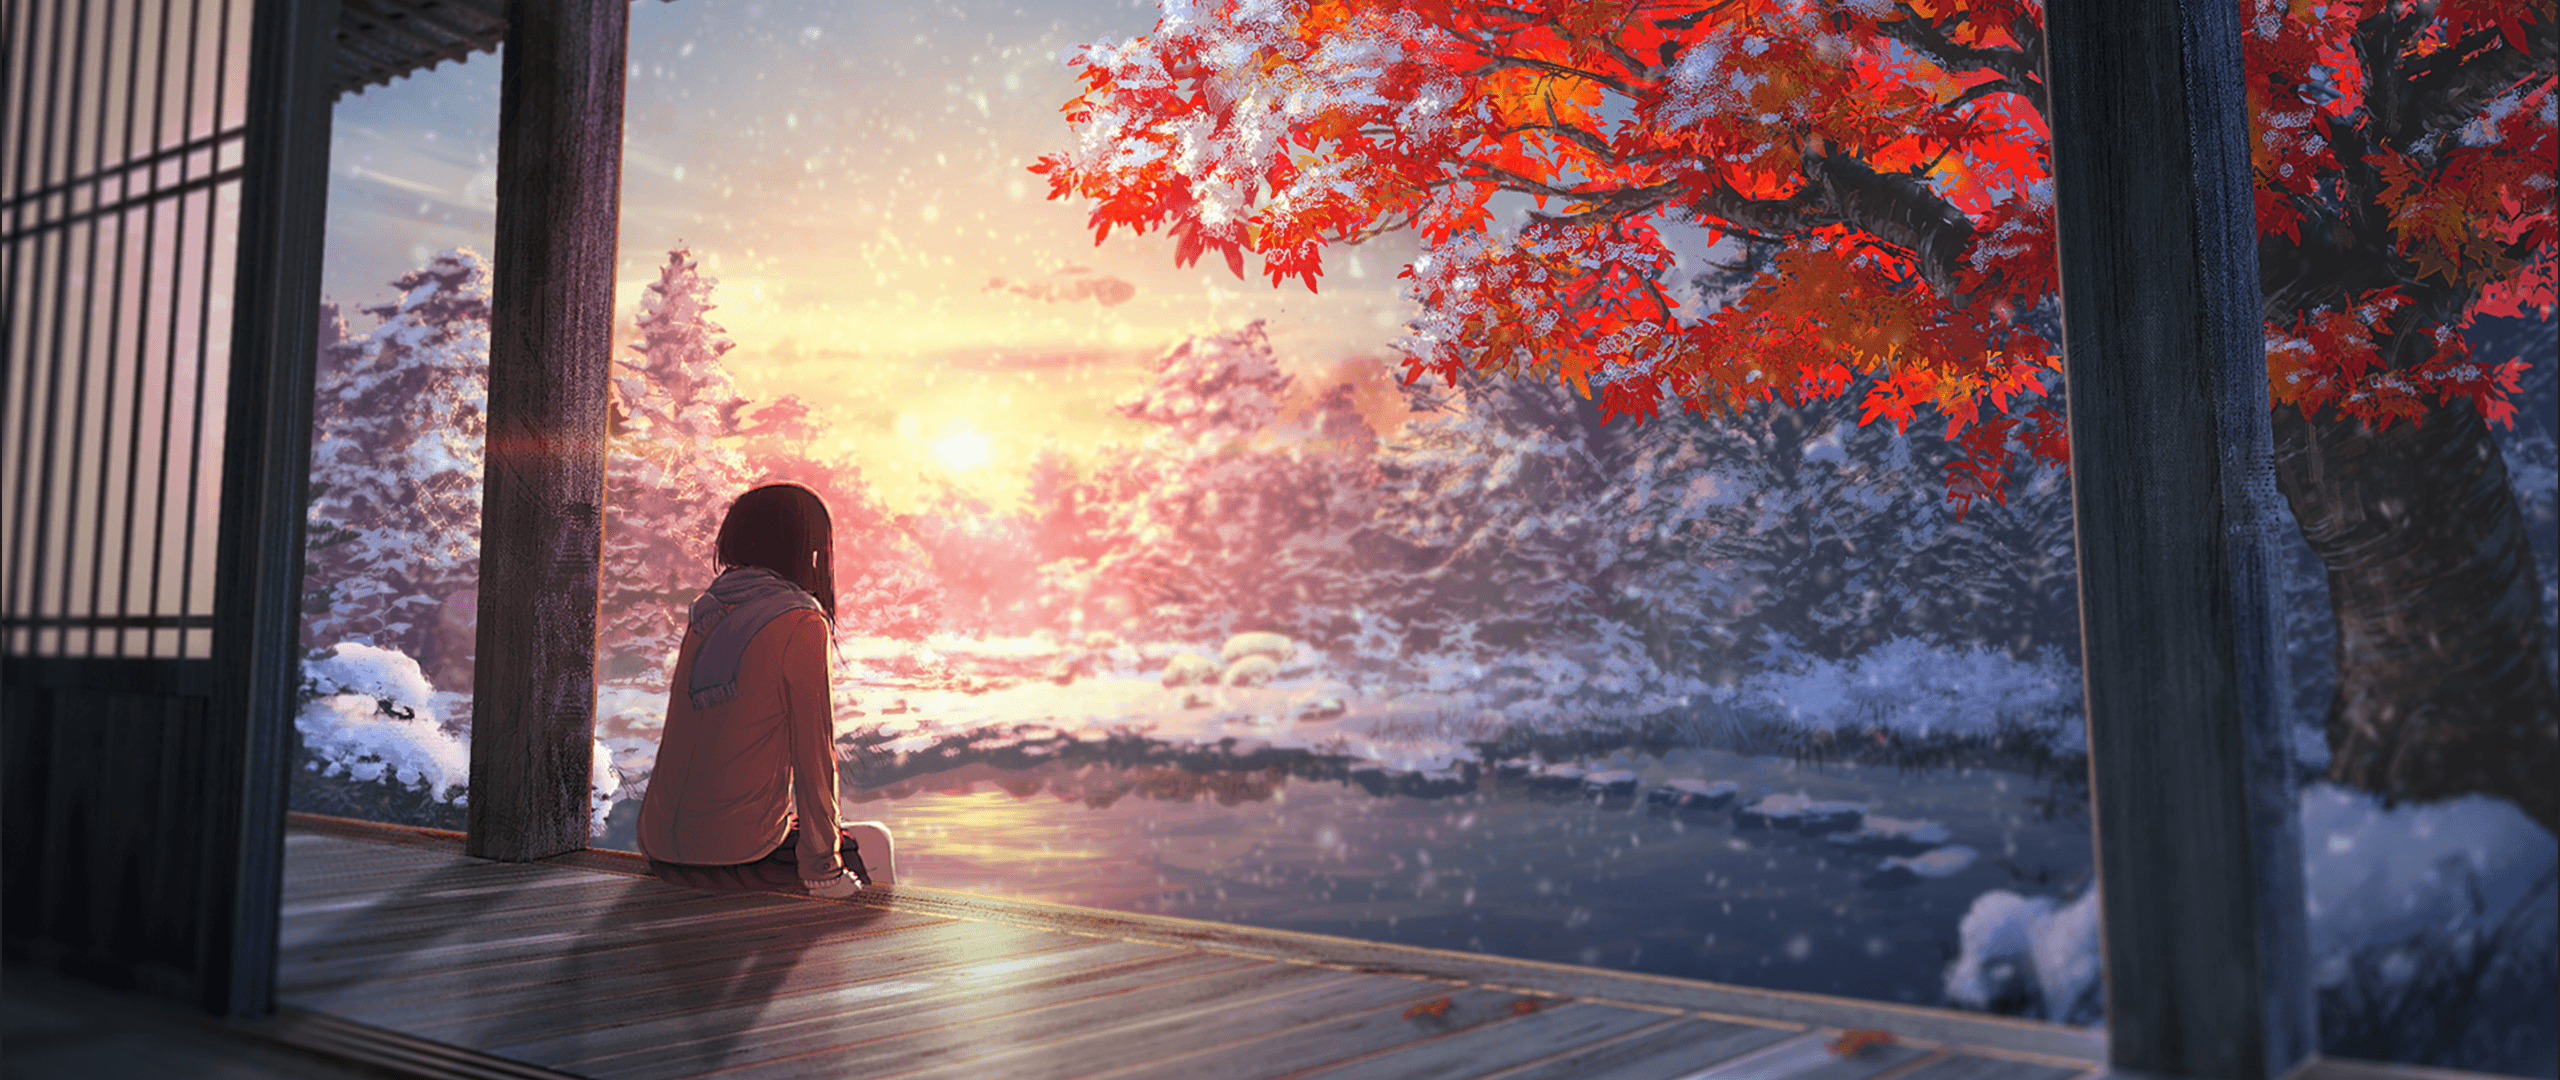 2560x1080 Anime Aesthetic Wallpapers Wallpaper Cave